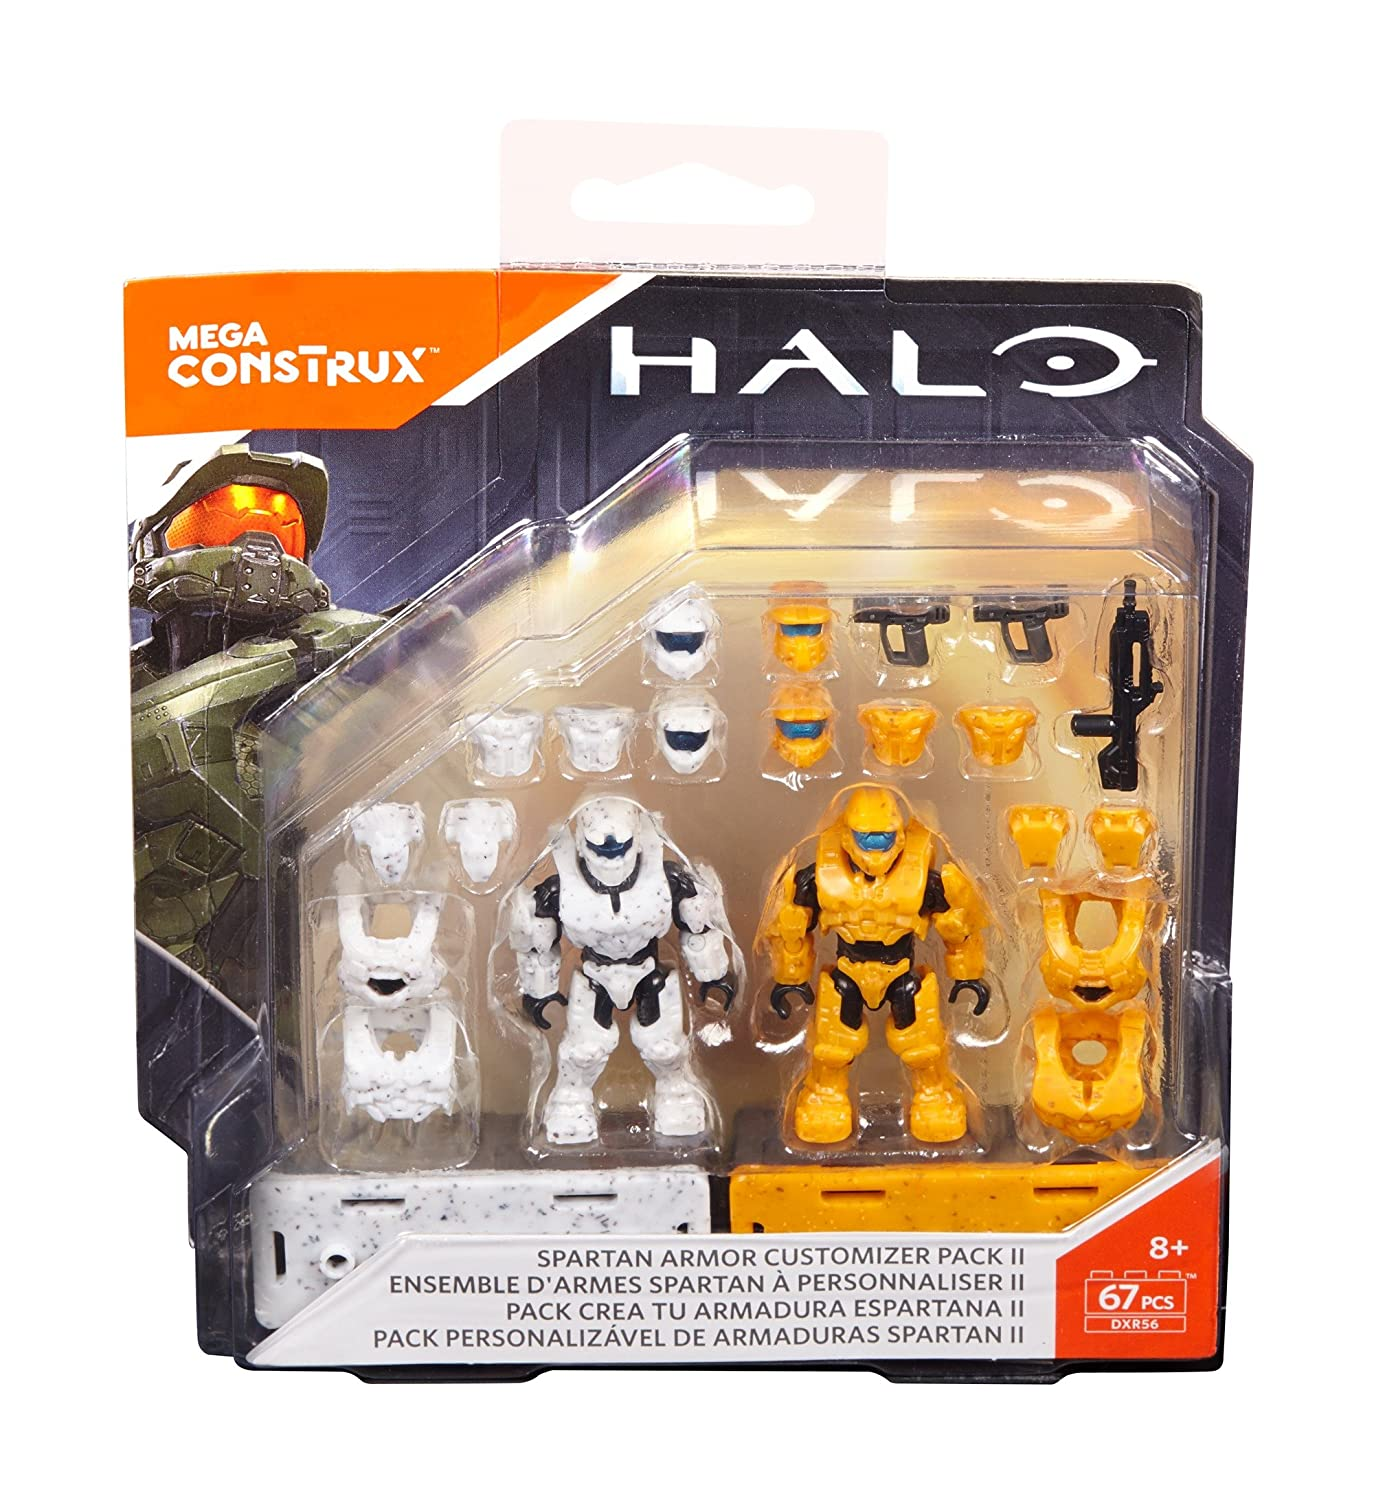 Mega Construx Halo Dxr56 Spartan Armor Customizer Pack Building